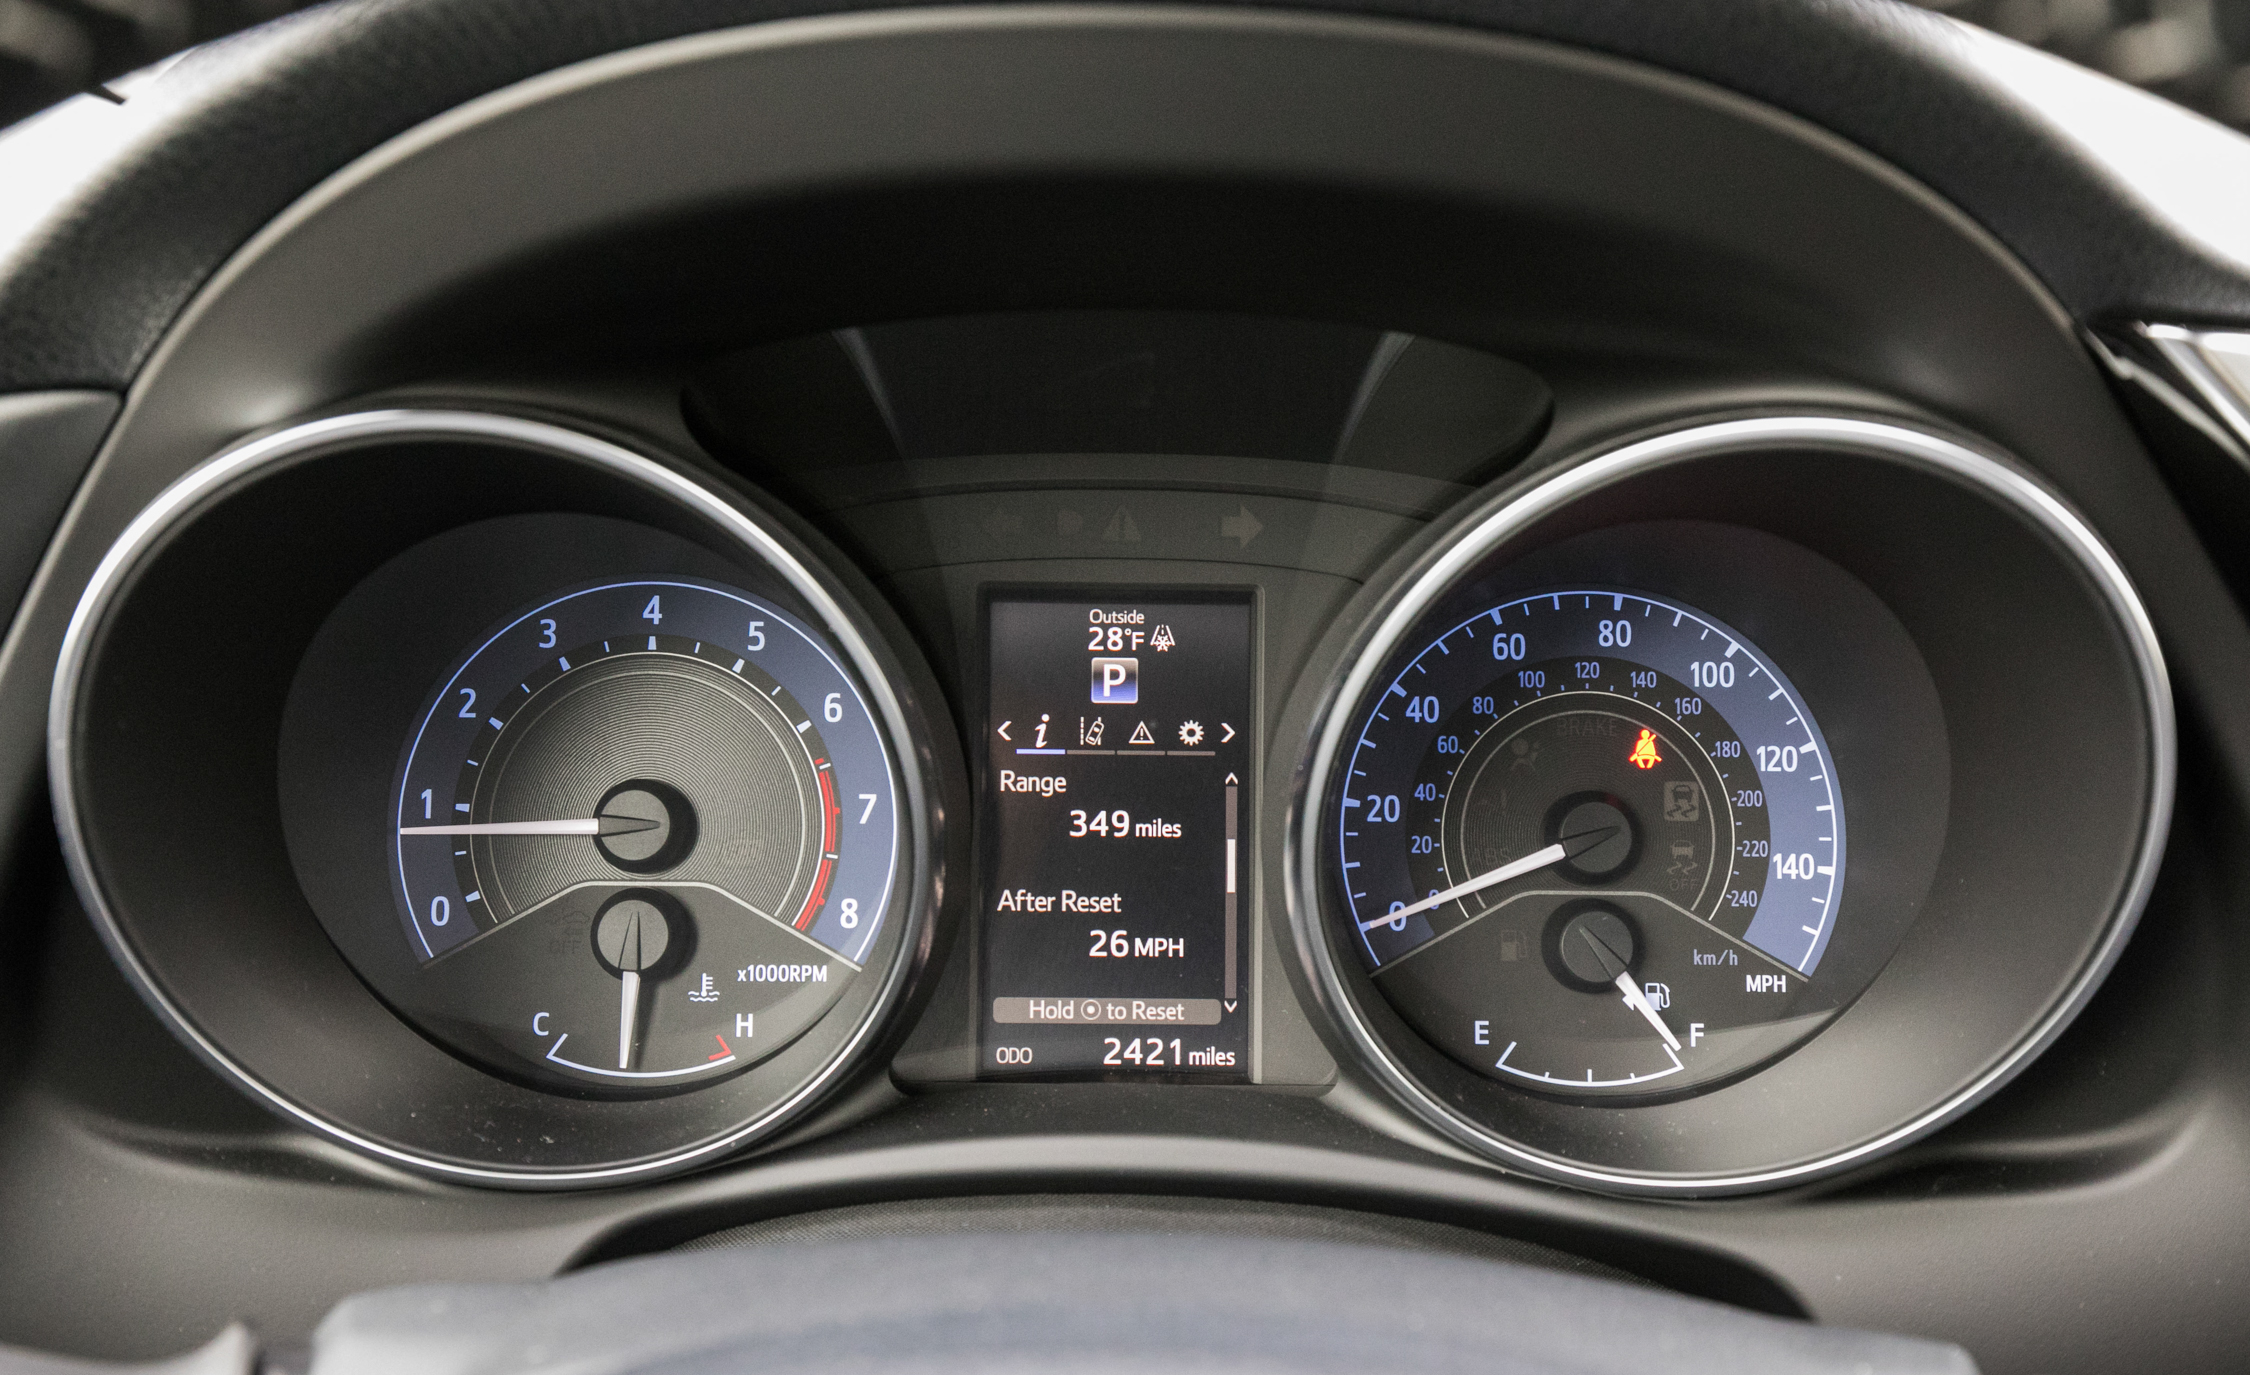 2017 Toyota Corolla IM Hatchback Interior View Speedometer (Photo 35 of 52)